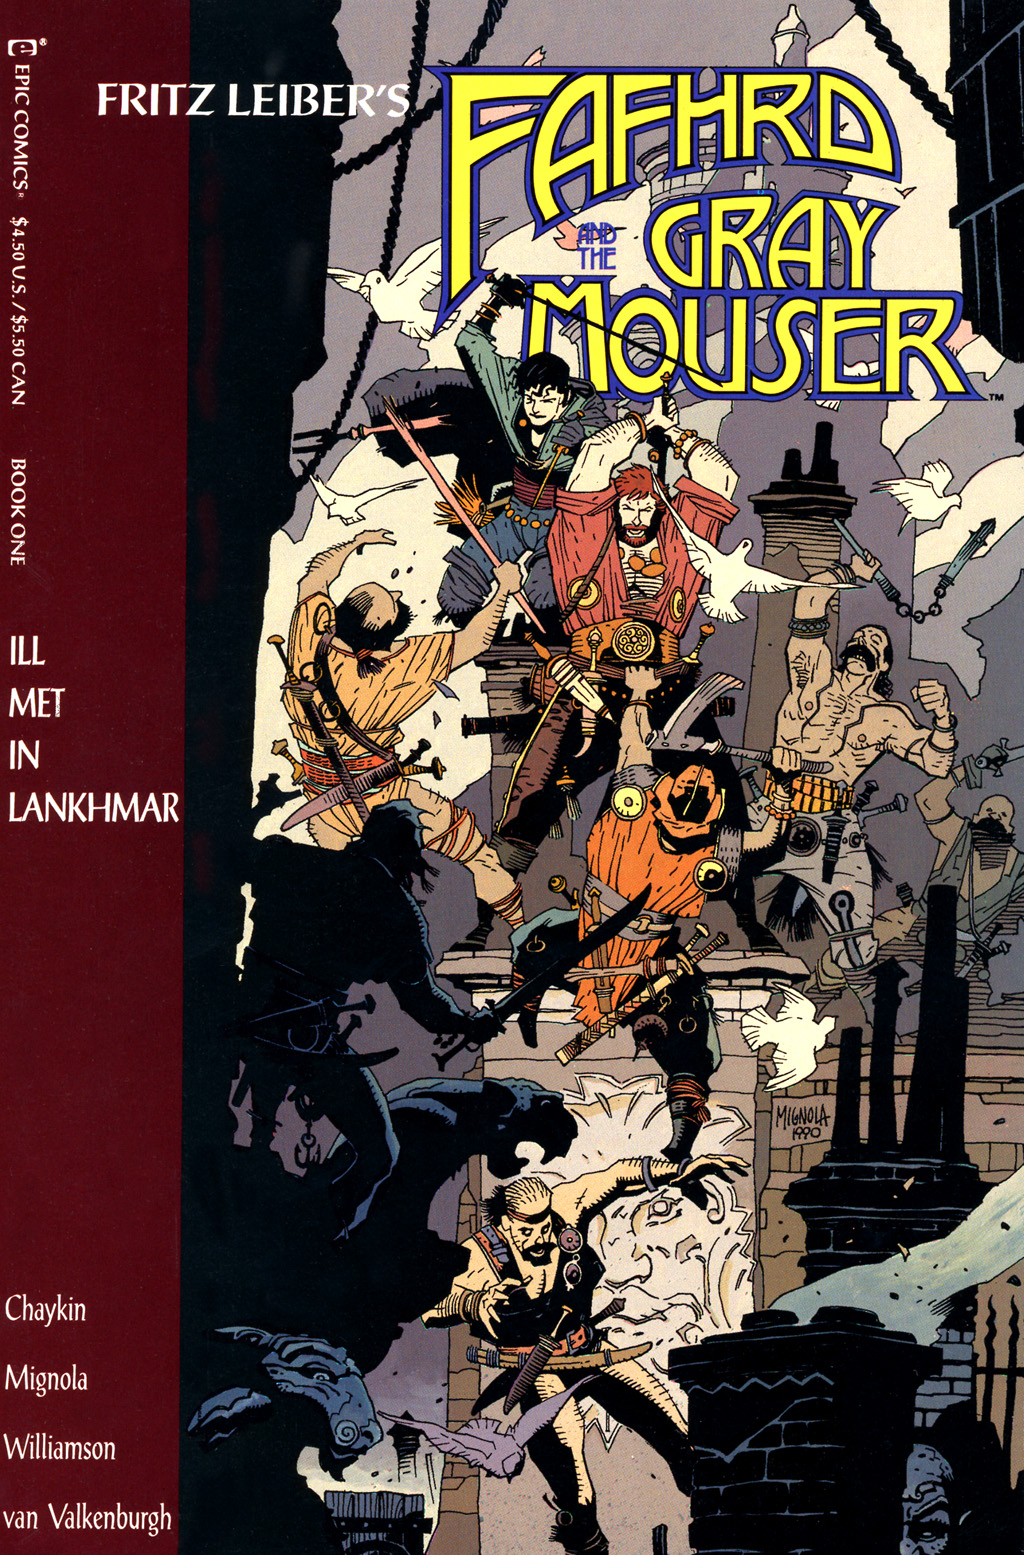 Fafhrd and the Gray Mouser #1 - Read Fafhrd and the Gray